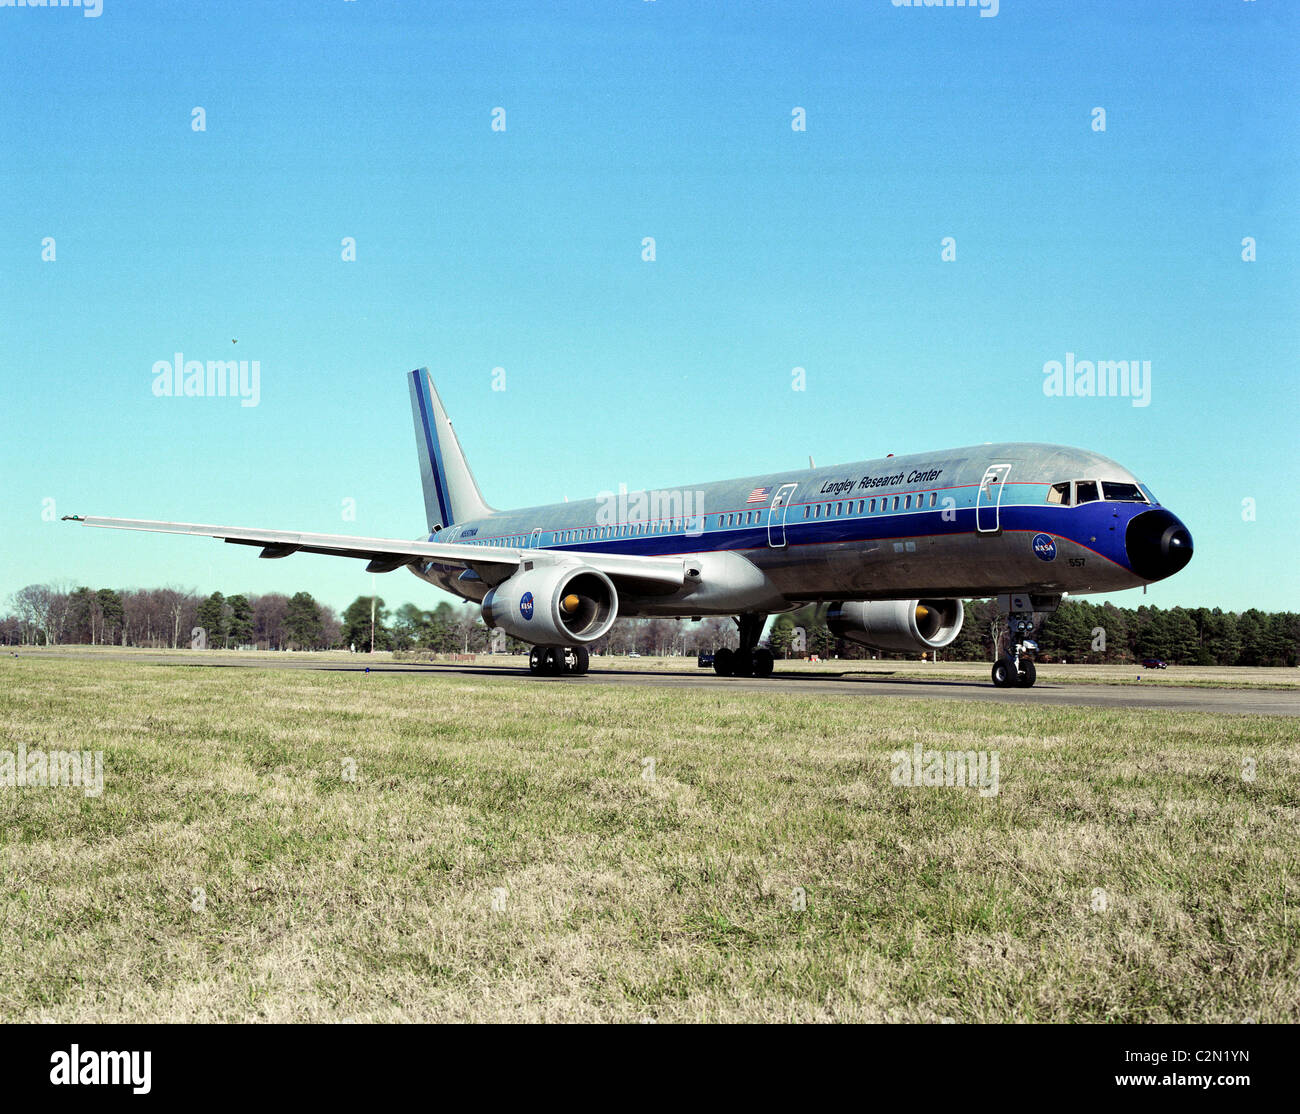 boeing b757 nasa langley 39 s b 757 test aircraft stock. Black Bedroom Furniture Sets. Home Design Ideas